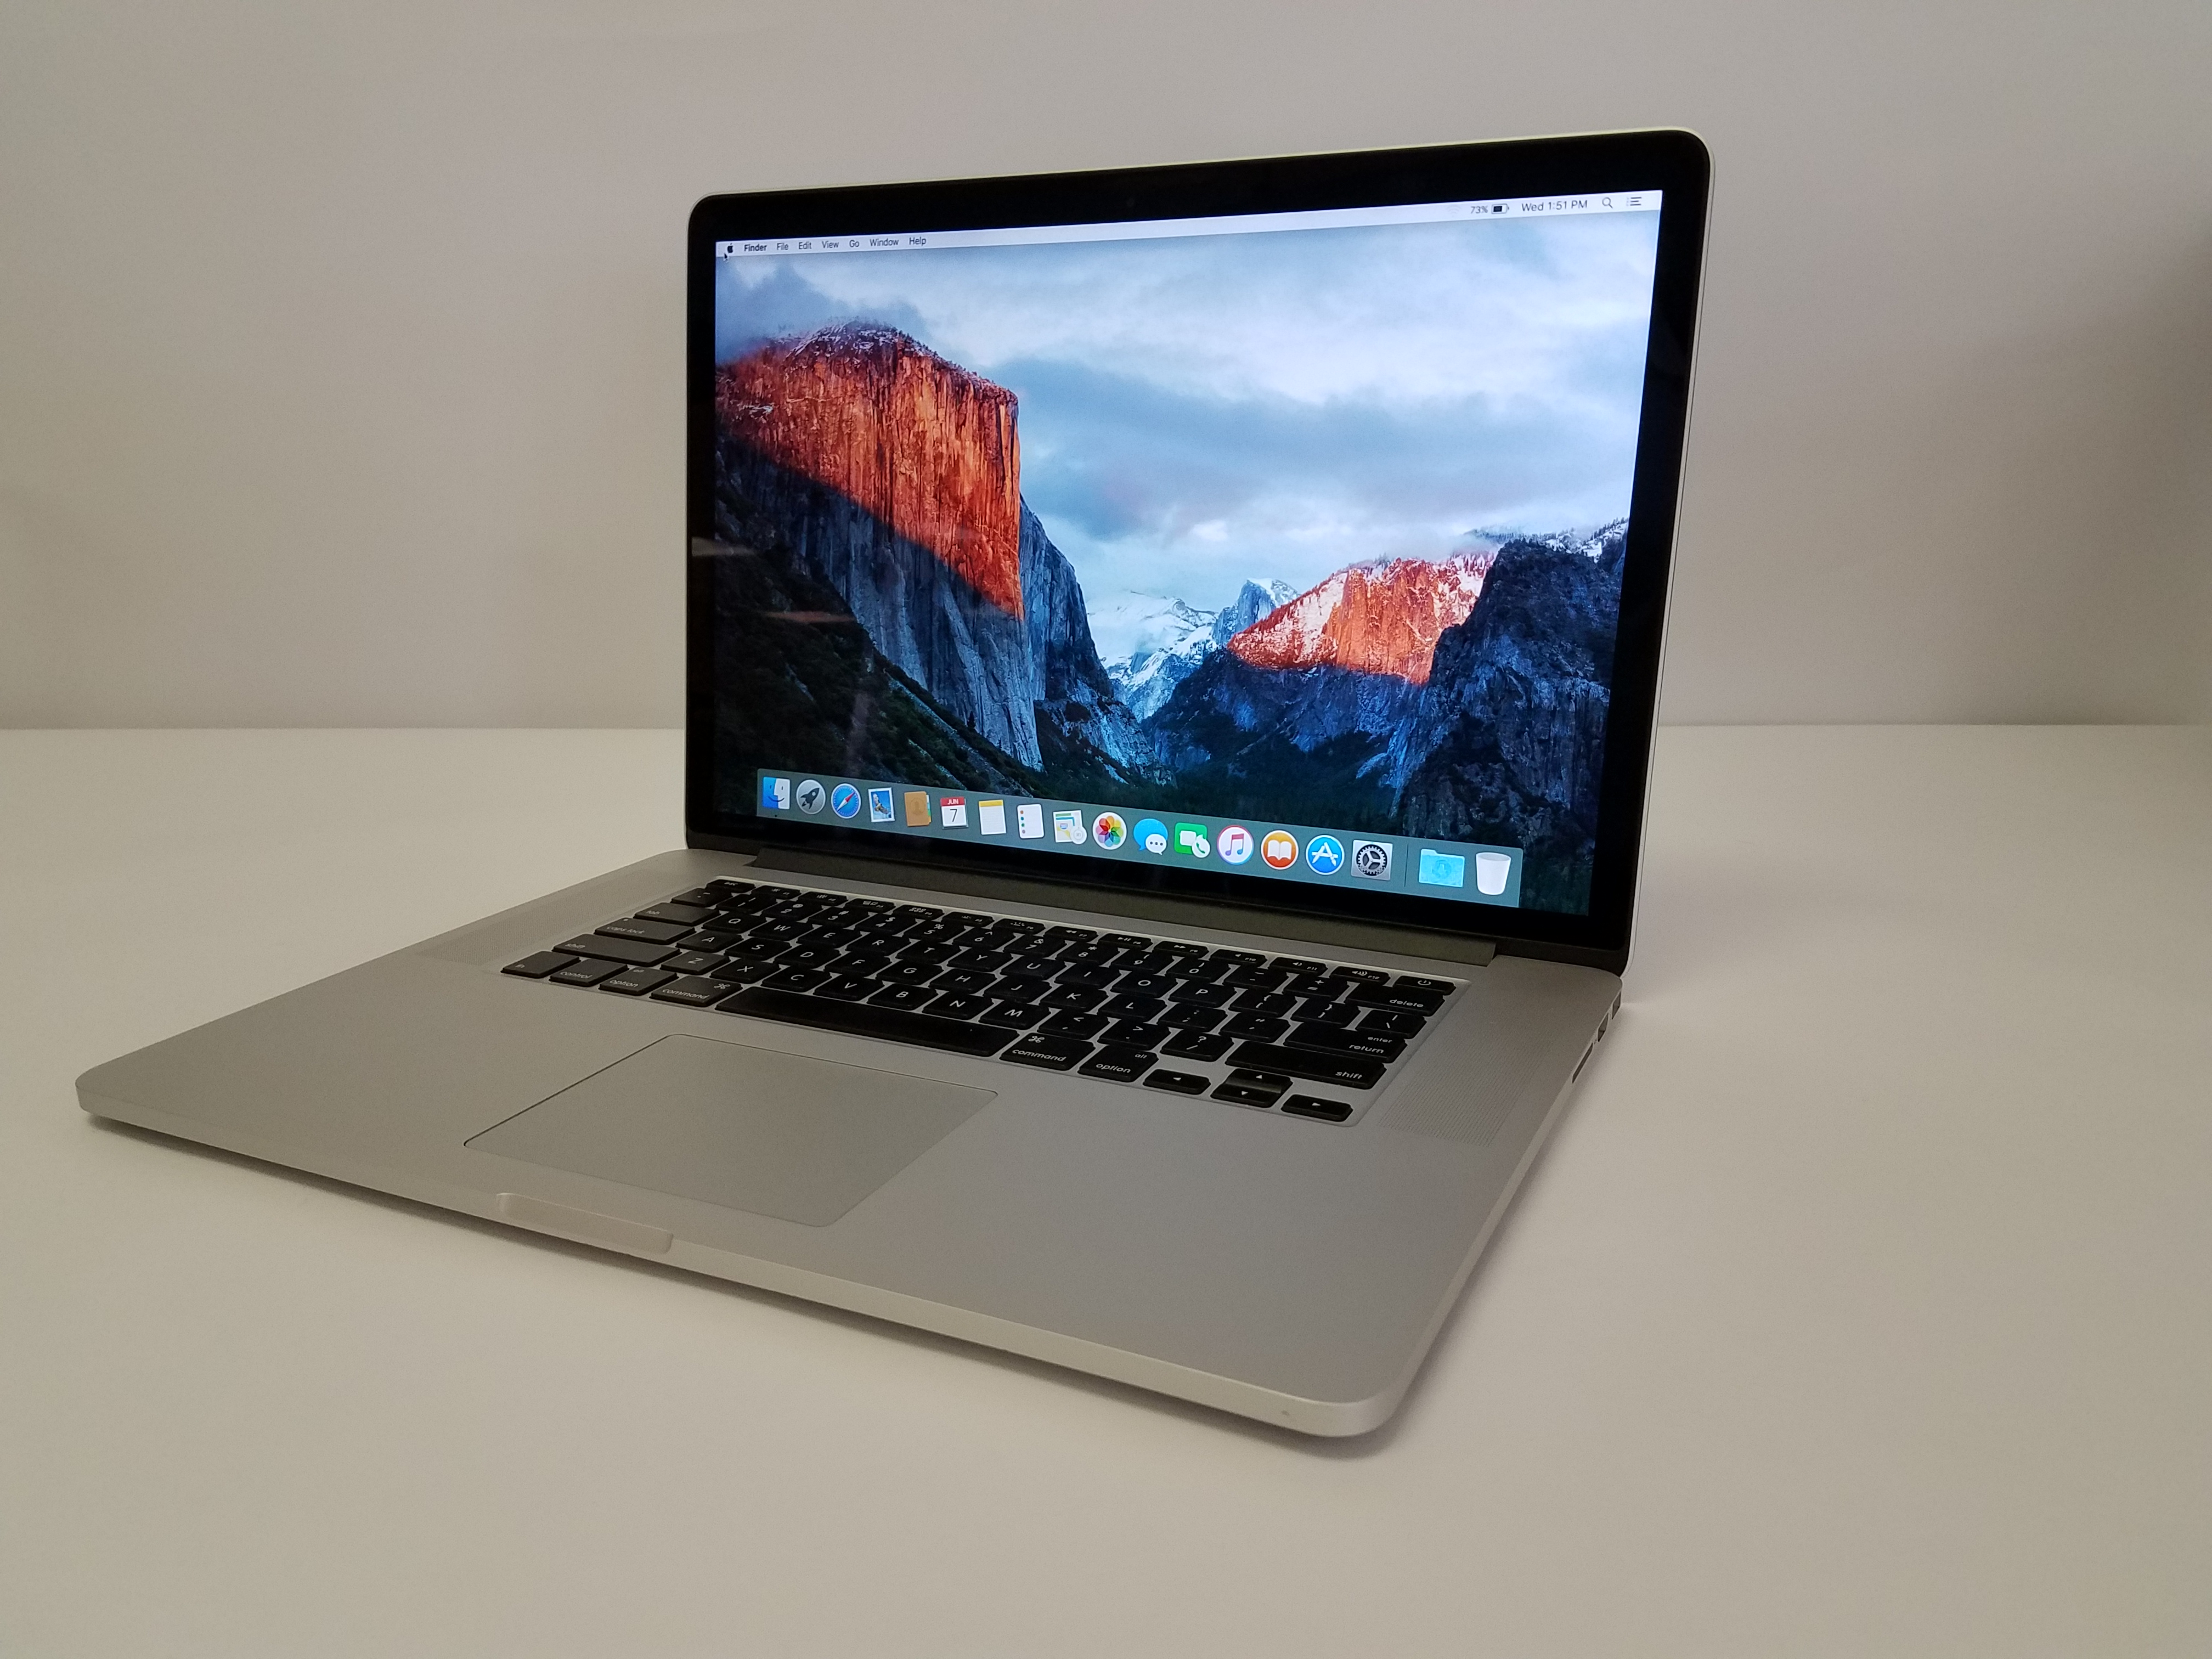 Shop Best Buy for a new Apple MacBook. Choose a MacBook Air, Pro, or Retina Display model along with all the accessories you need.